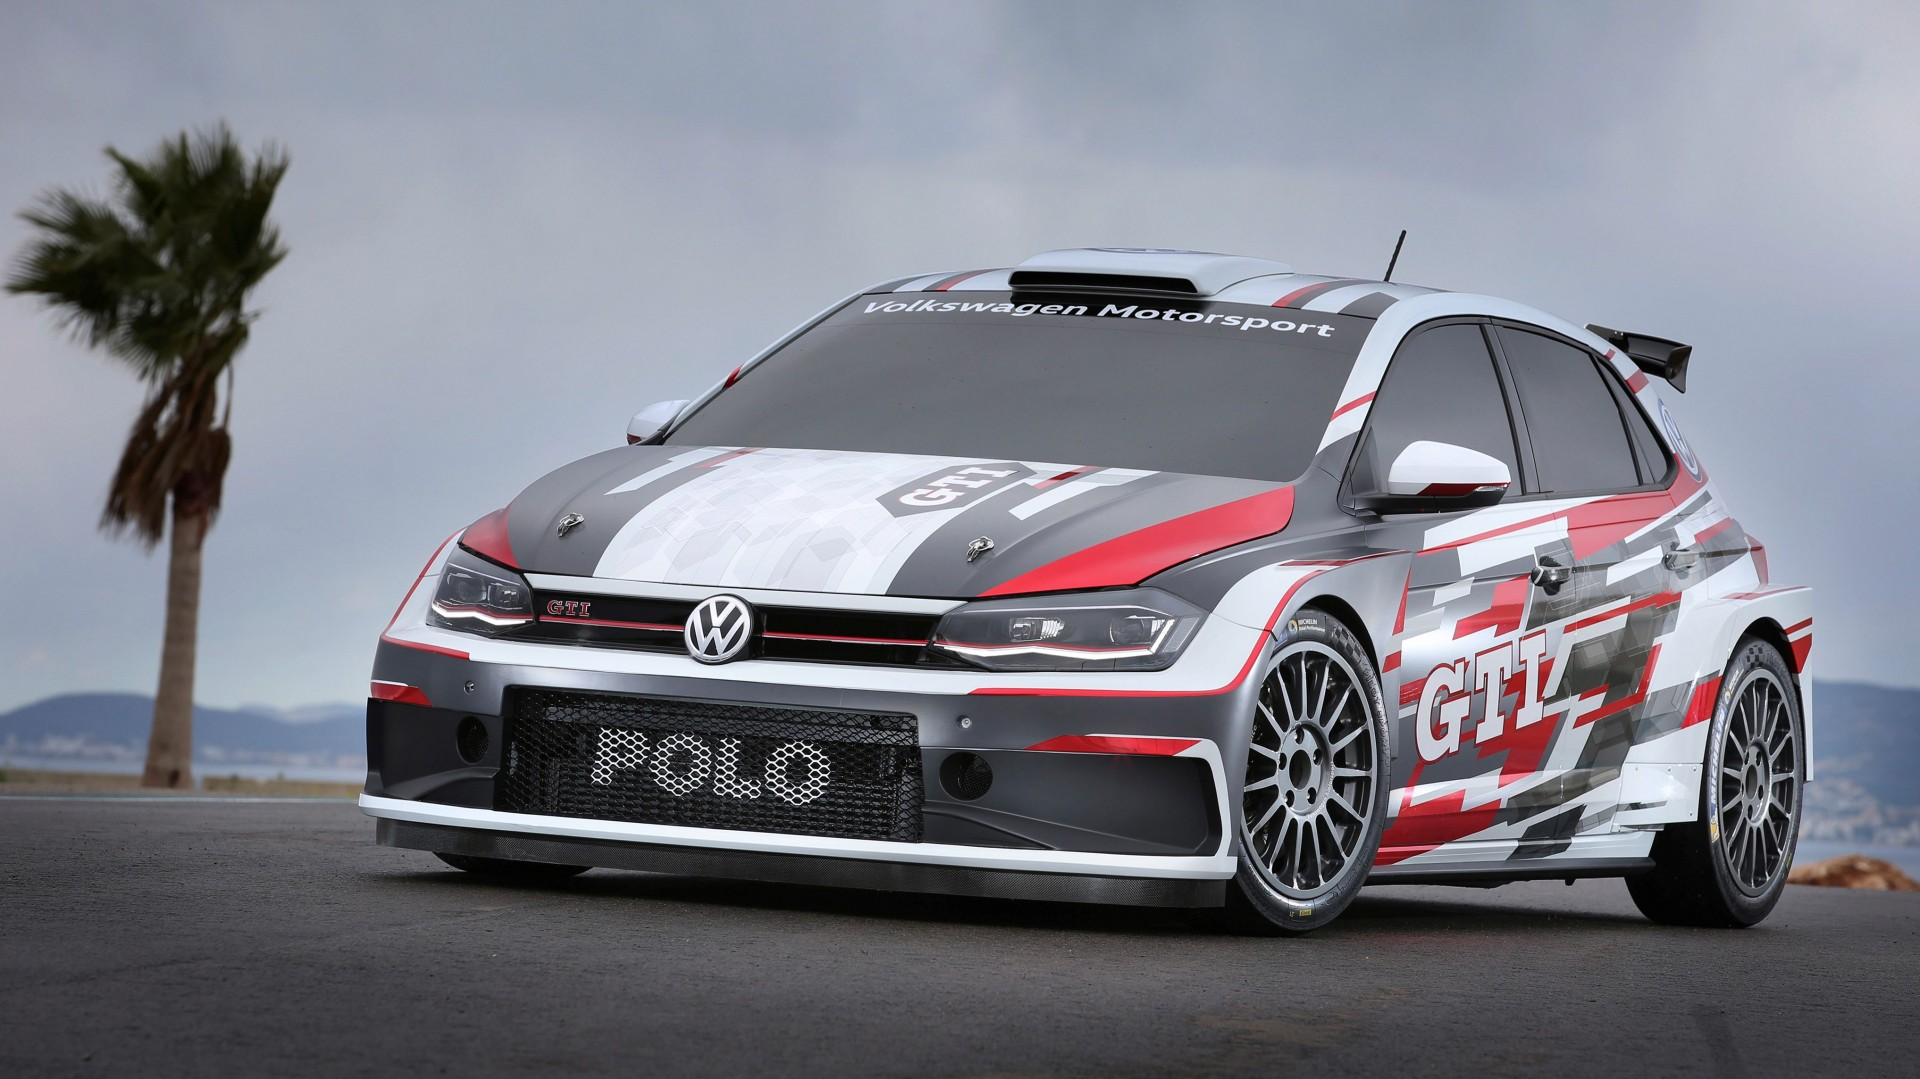 Volkswagen Polo Gti R5 Maakt Rallydebuut In 2018